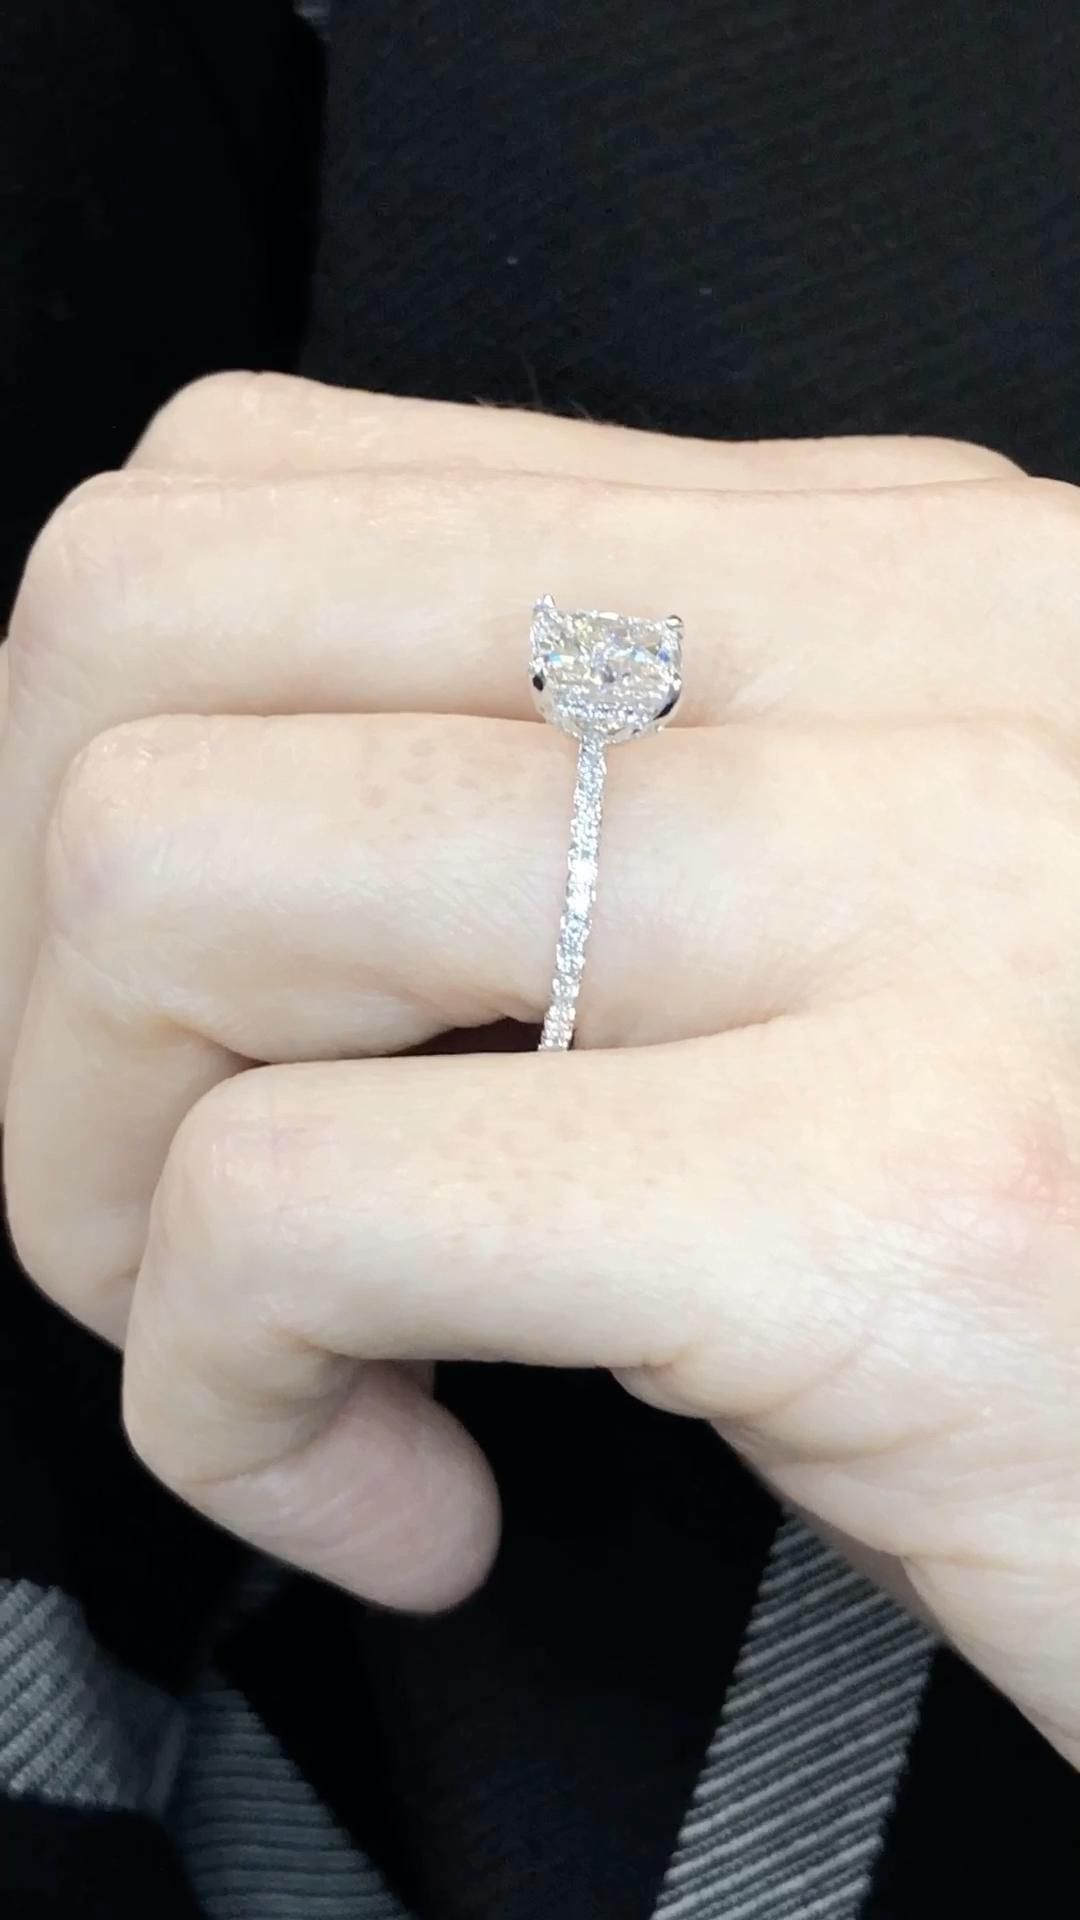 A modern style for a classic romance, this diamond engagement ring features an elongated cushion cut diamond. Delicately designed with a thin, delicate diamond band solitaire style ring.  Design yours with Ascot Diamonds.   #cushionengagementrings #solitaireengagementrings #customengagementring #ascotdiamonds